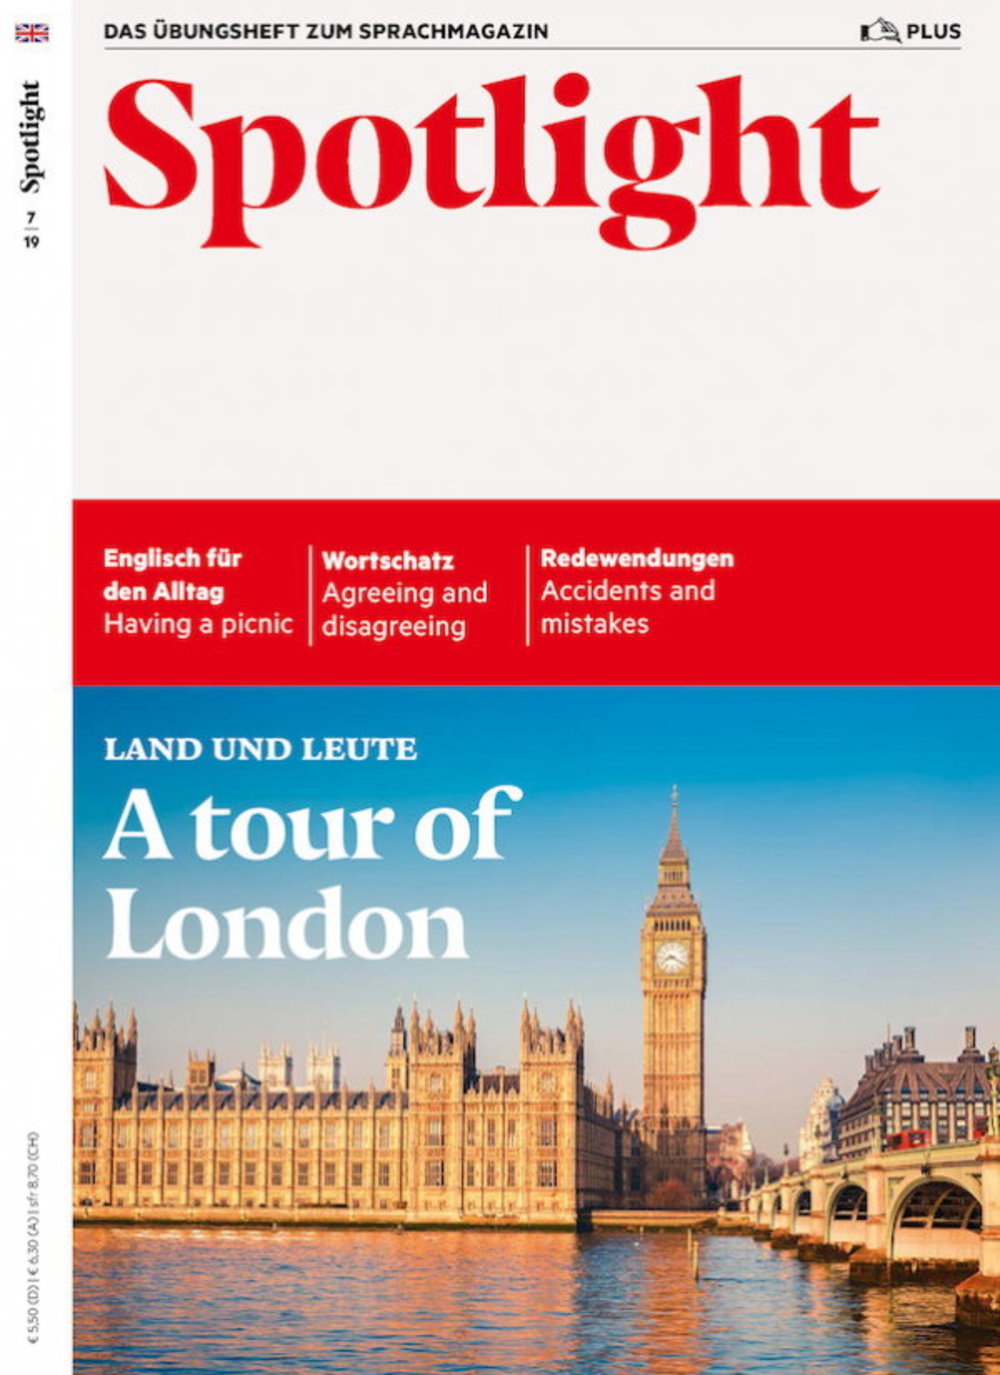 Spotlight PLUS 07/2019